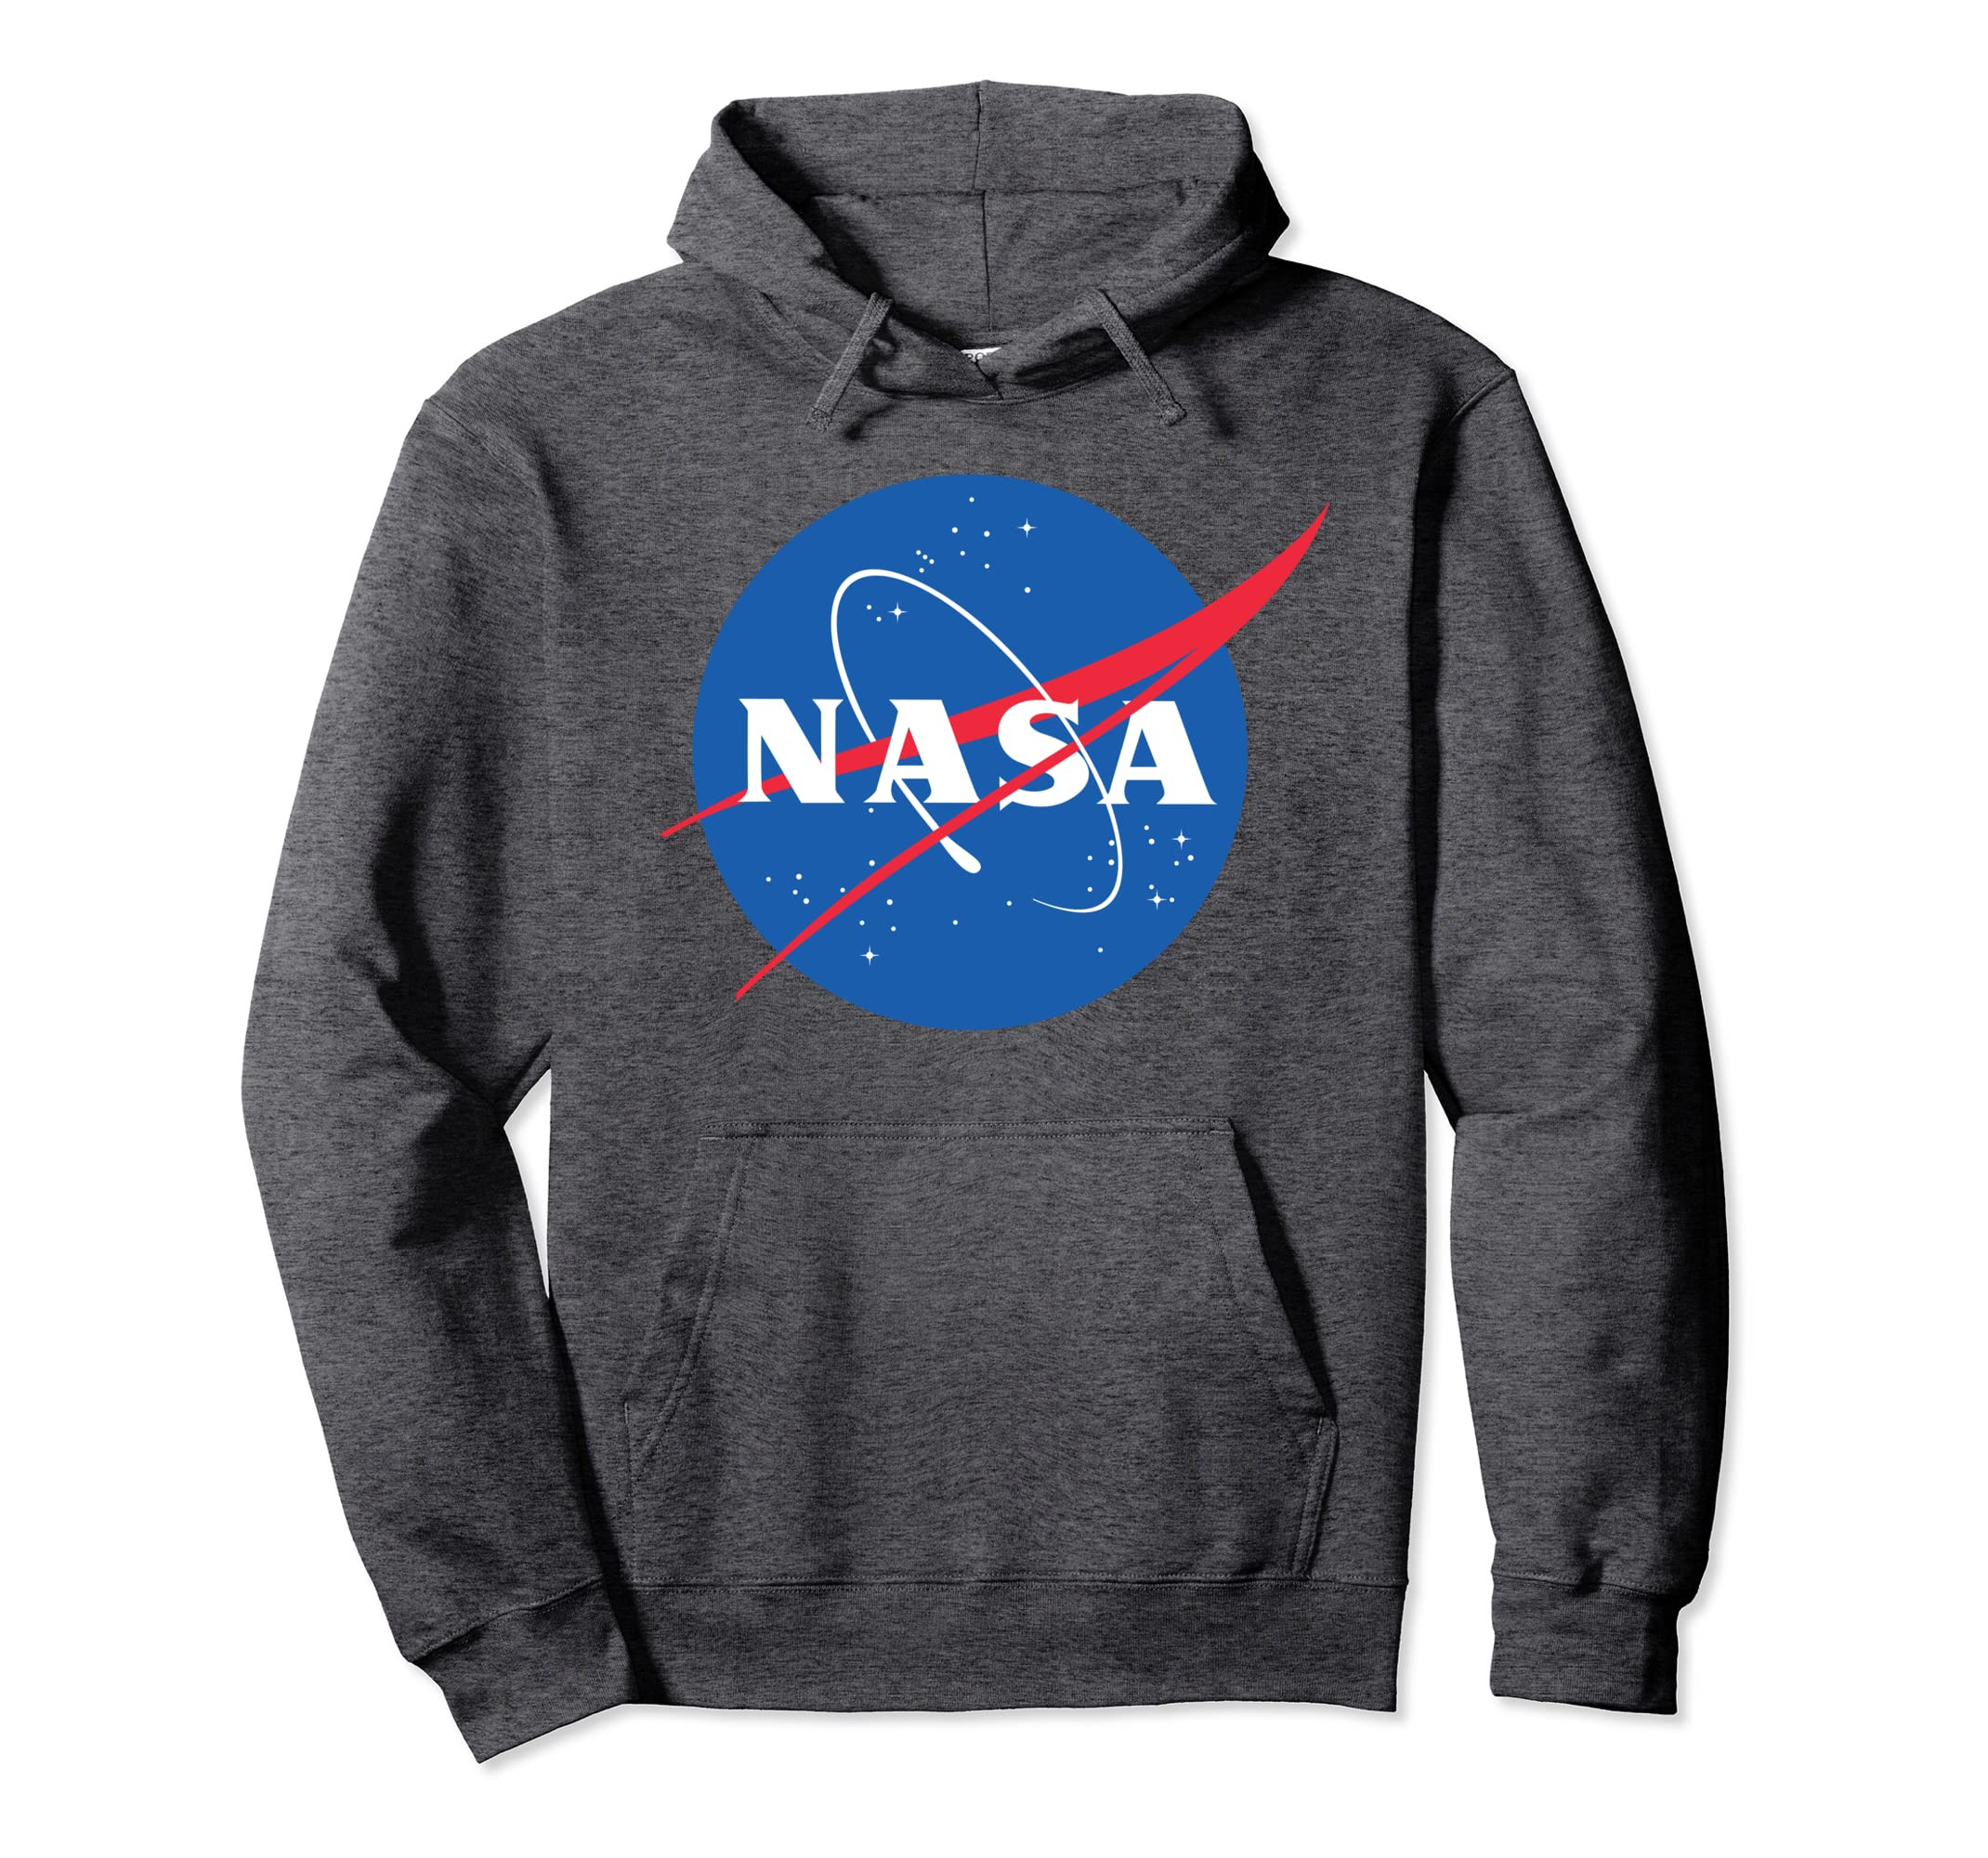 d47d93bc0 Amazon.com: NASA Hoodie Sweatshirt - Officially Approved -Unisex: Clothing